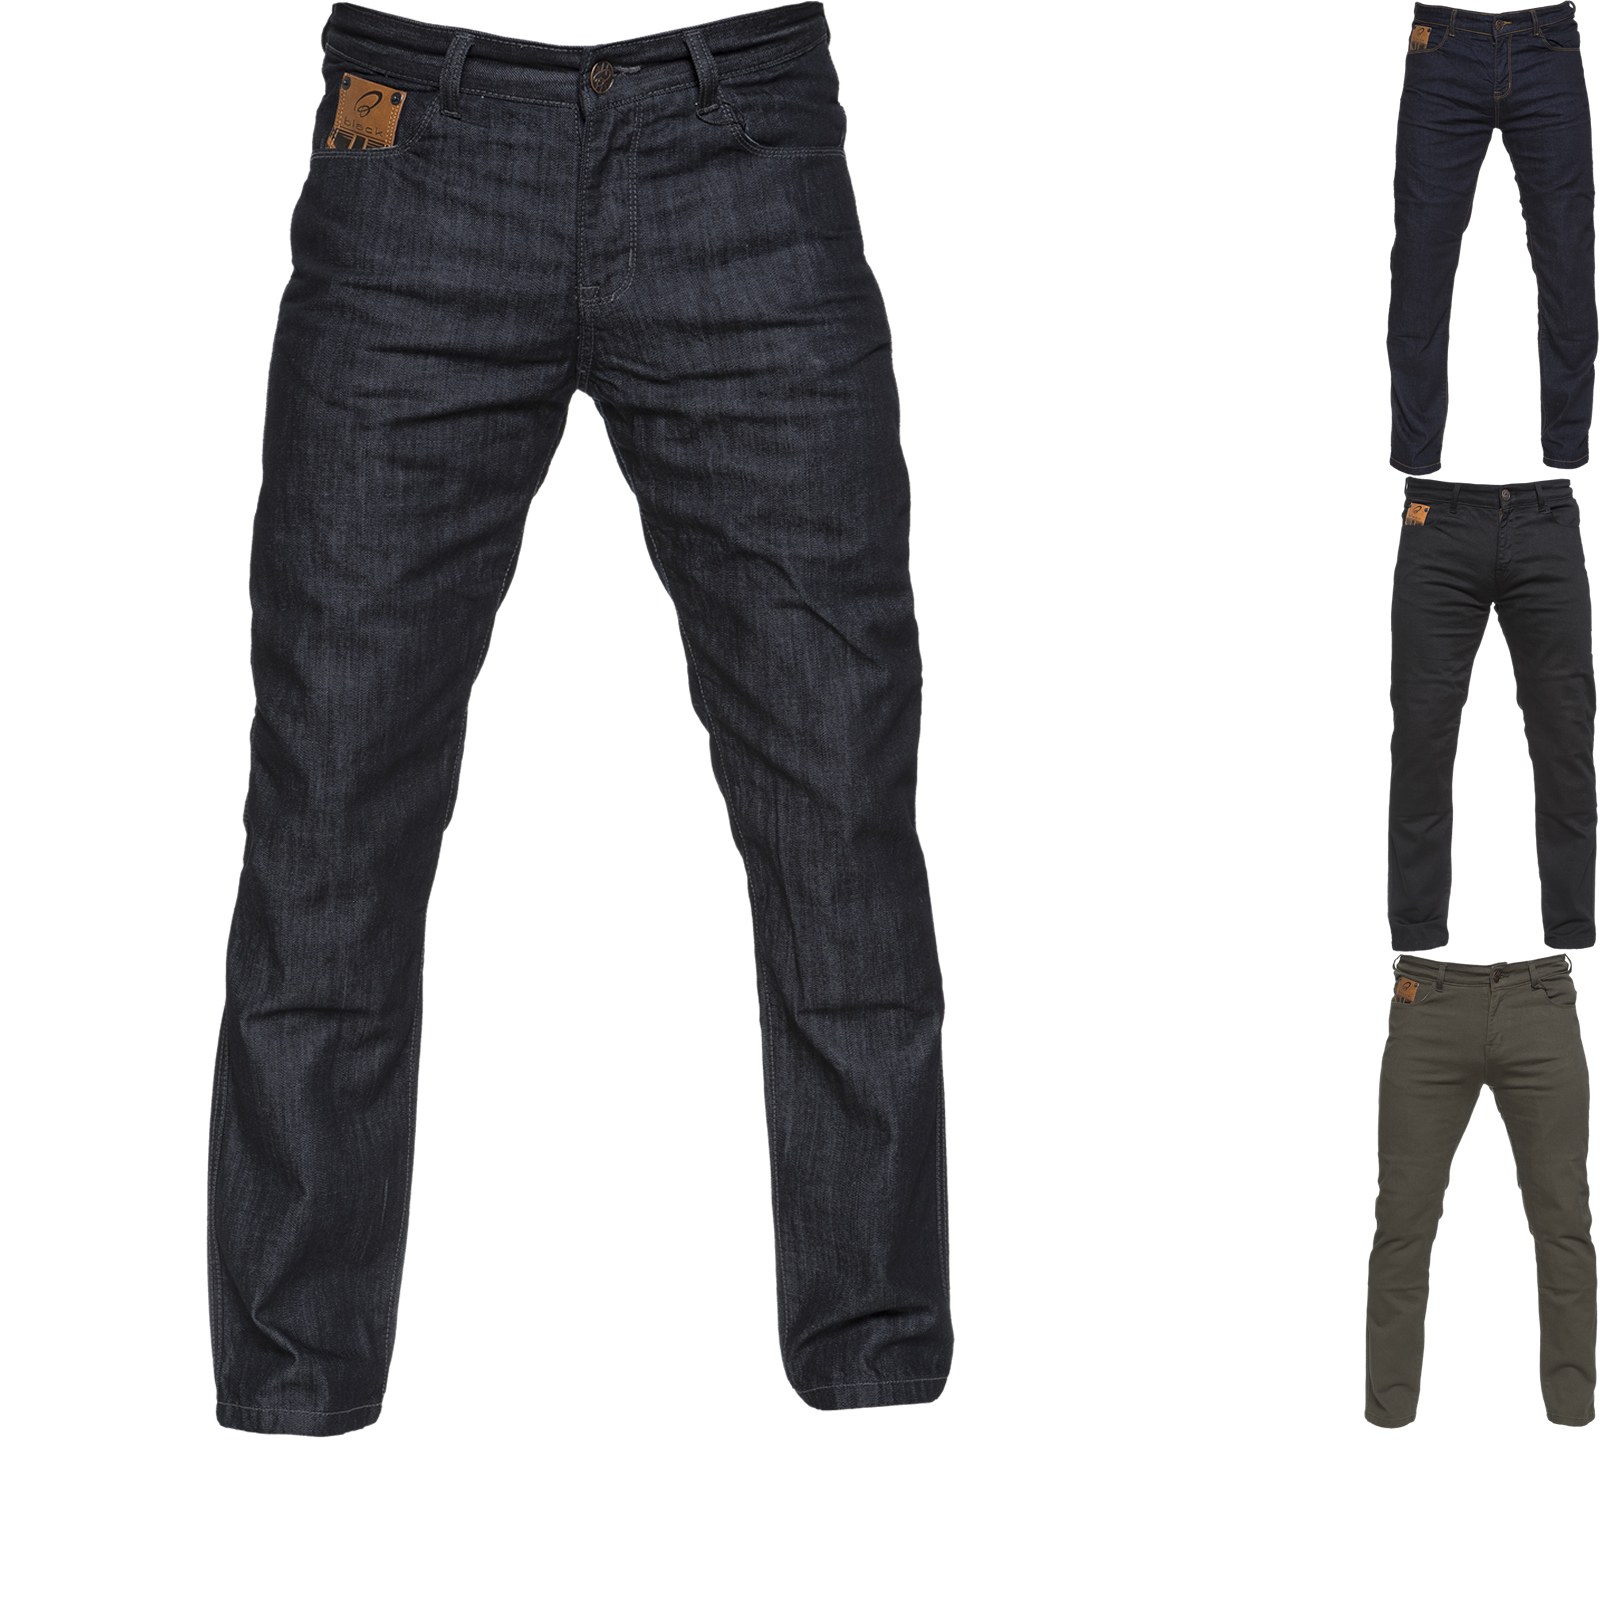 the latest 7c6ca 11624 Details about Black Ballistic Made With Kevlar Fibre Motorcycle Denim Jeans  Motorbike Bike